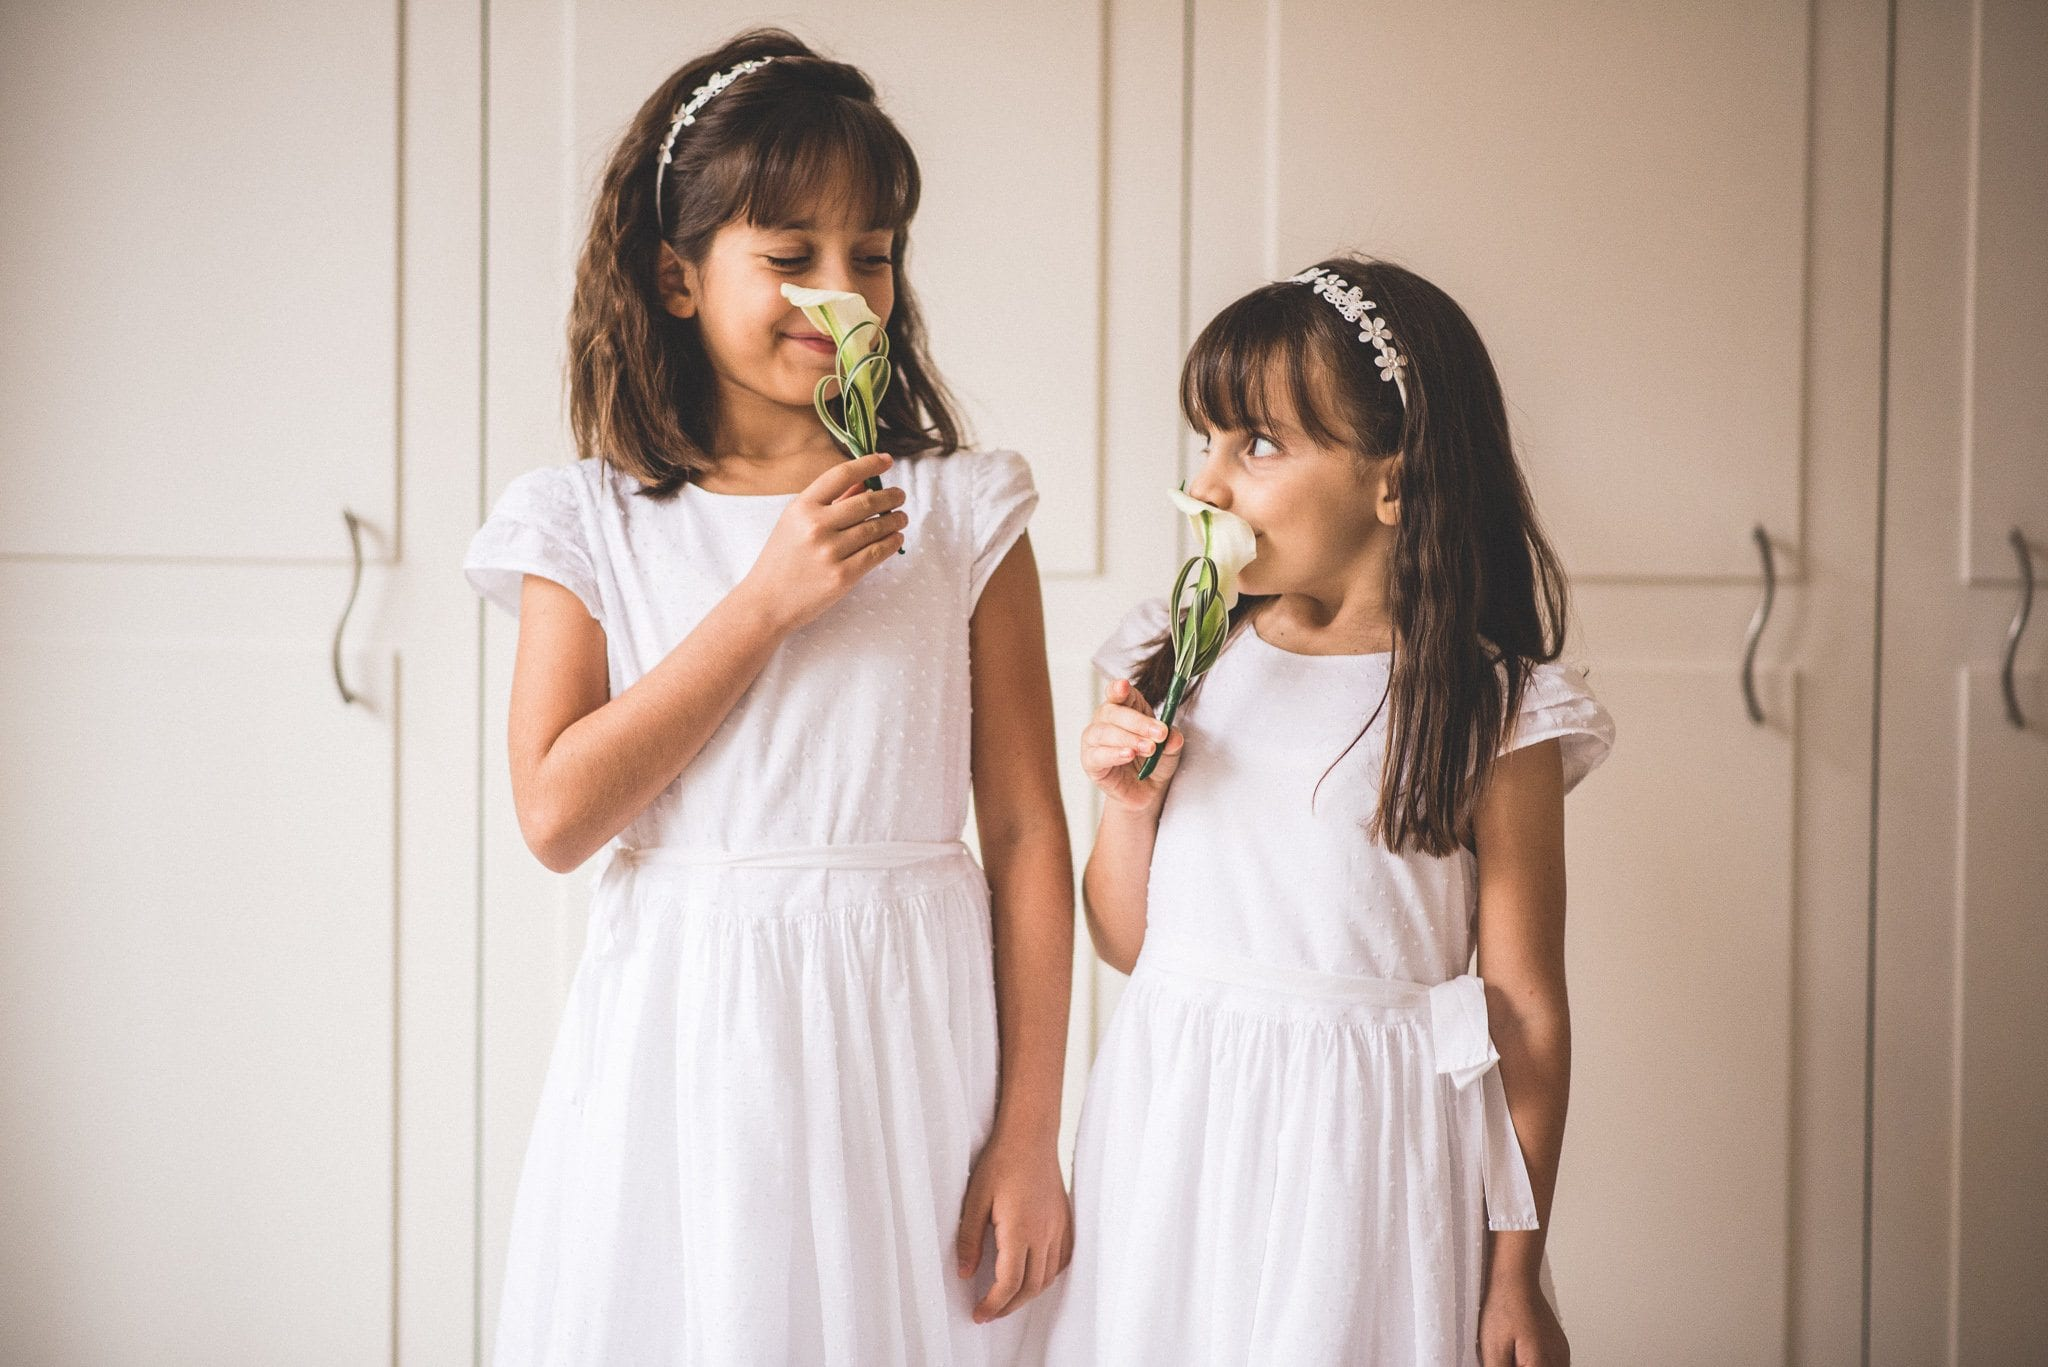 The two flower girls hold calla lilies up to their noses and grin at each other. They wear white shift dresses and silver headbands with flower details.